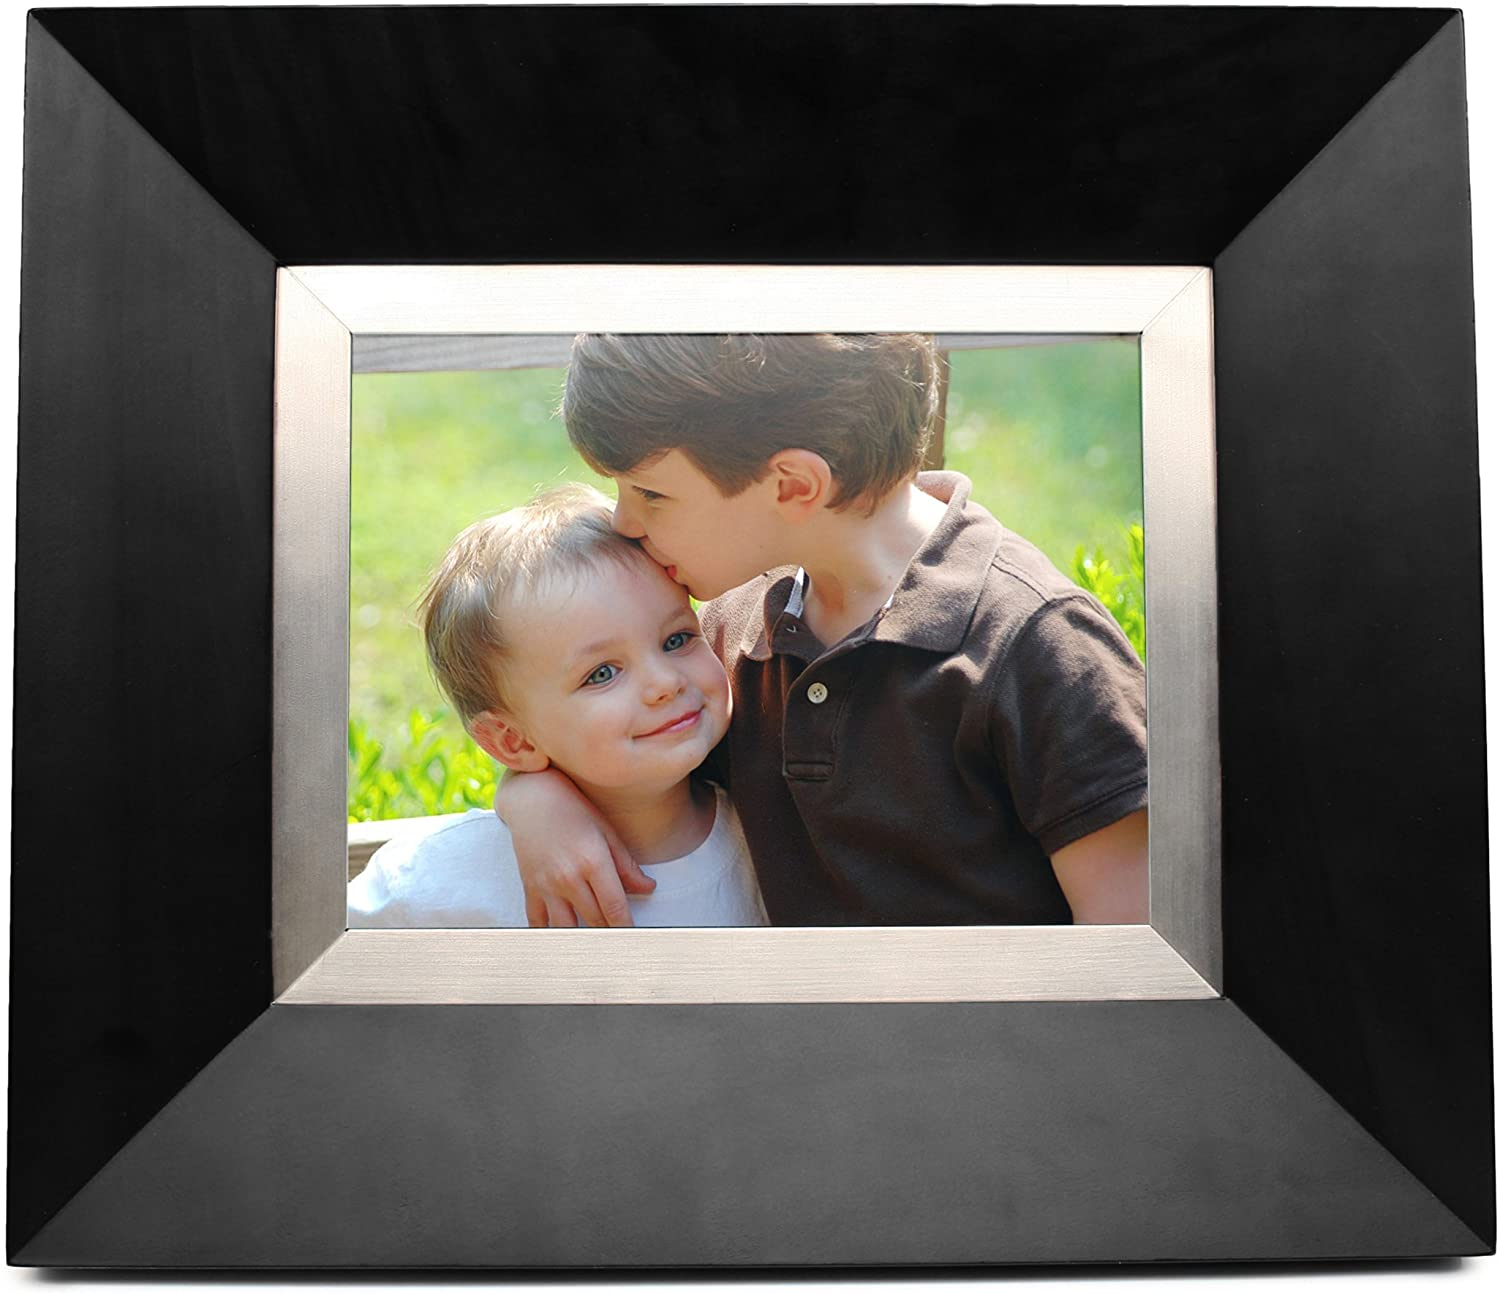 Cagic C8-BLACK 8.4-Inch TFT LCD Digital Picture Frame with TrueVu (Black Wood)